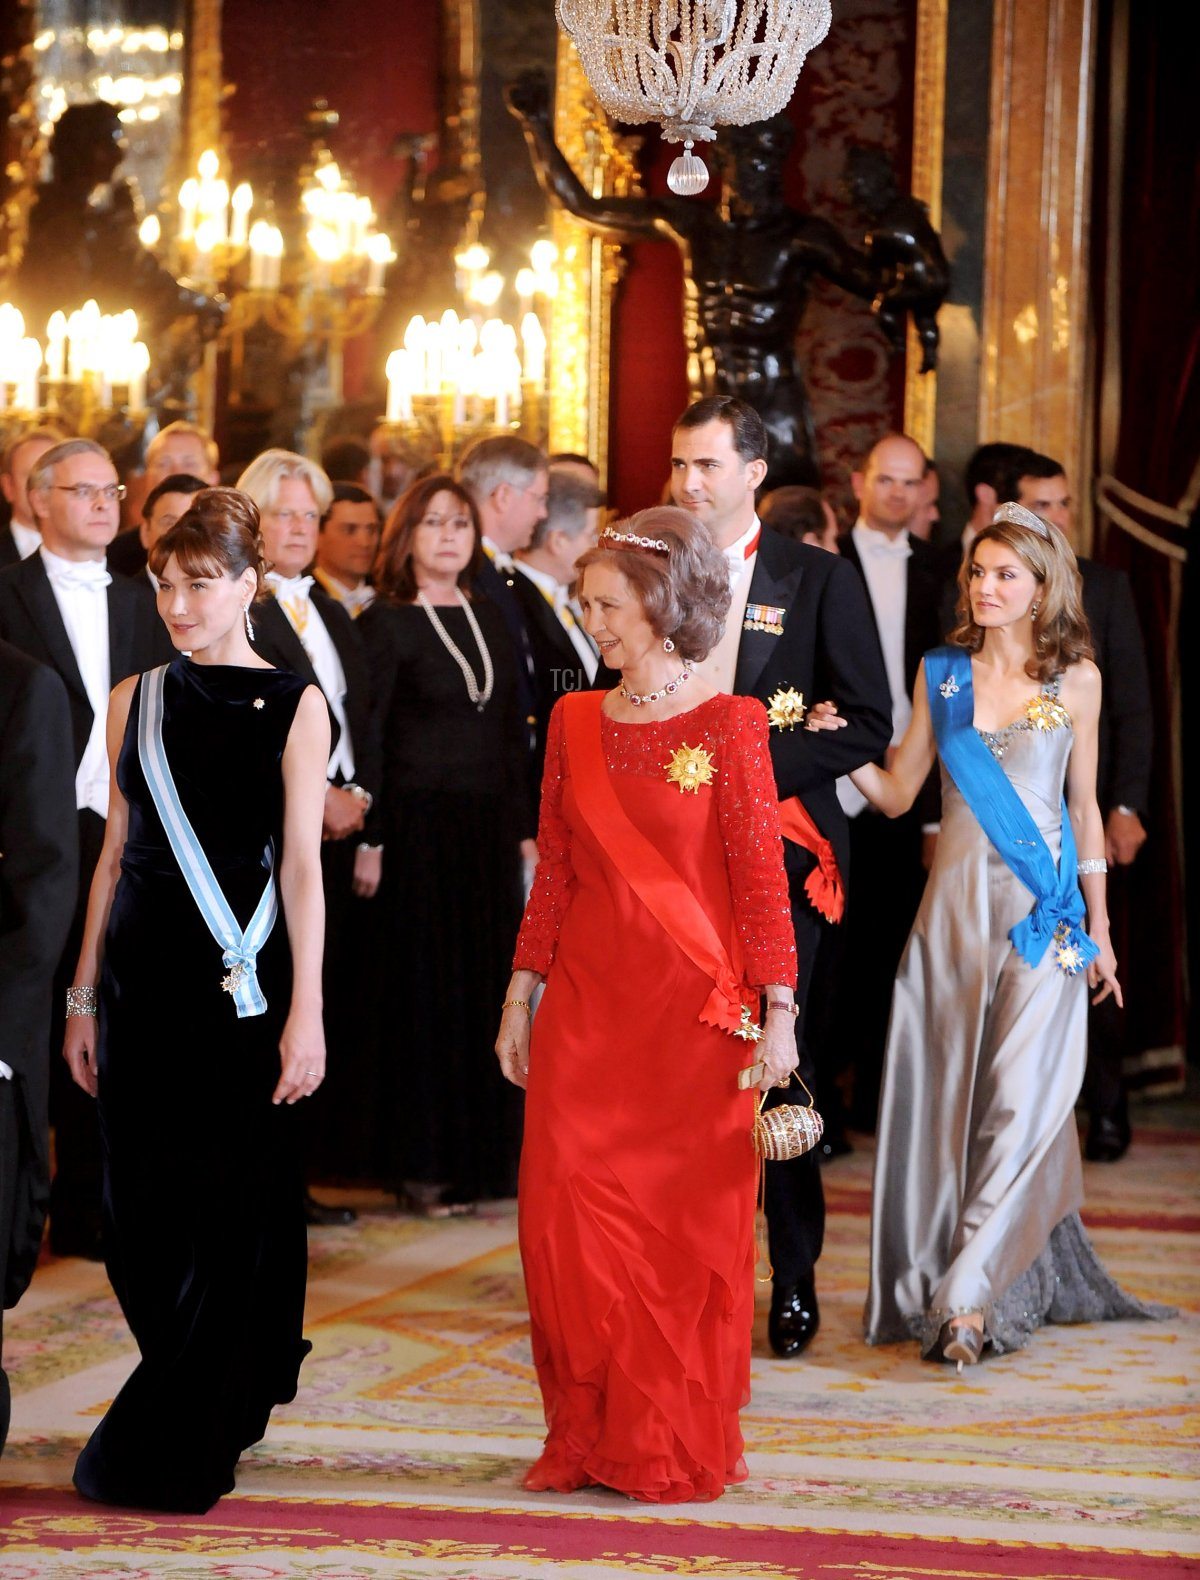 Carla Bruni, Queen Sofia of Spain, Prince Felipe of Spain and Princess Letizia of Spain attend a Gala Dinner honouring French President Nicolas Sarkozy at the Royal Palace on April 27, 2009 in Madrid, Spain